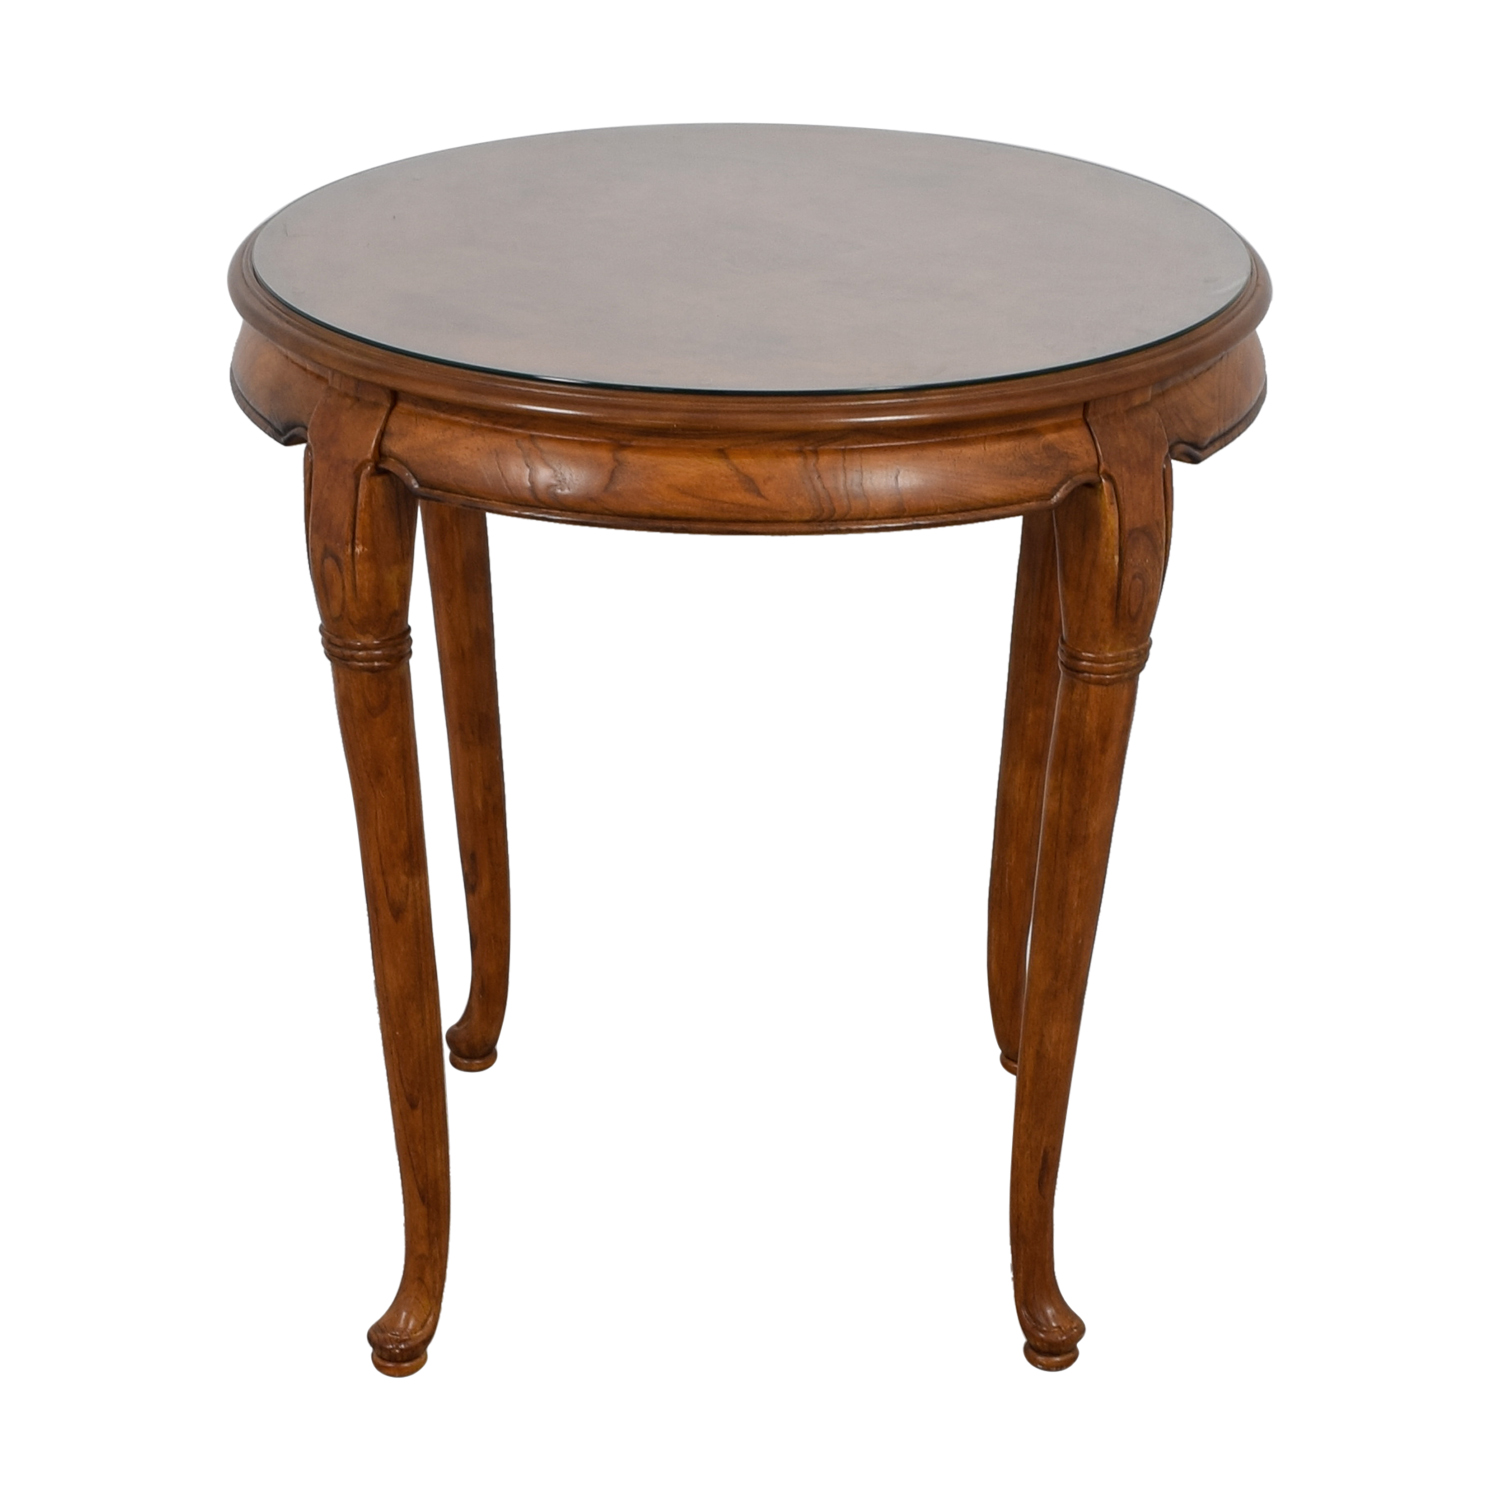 buy Round Wood Cafe Table with Protective Glass Top  Dinner Tables